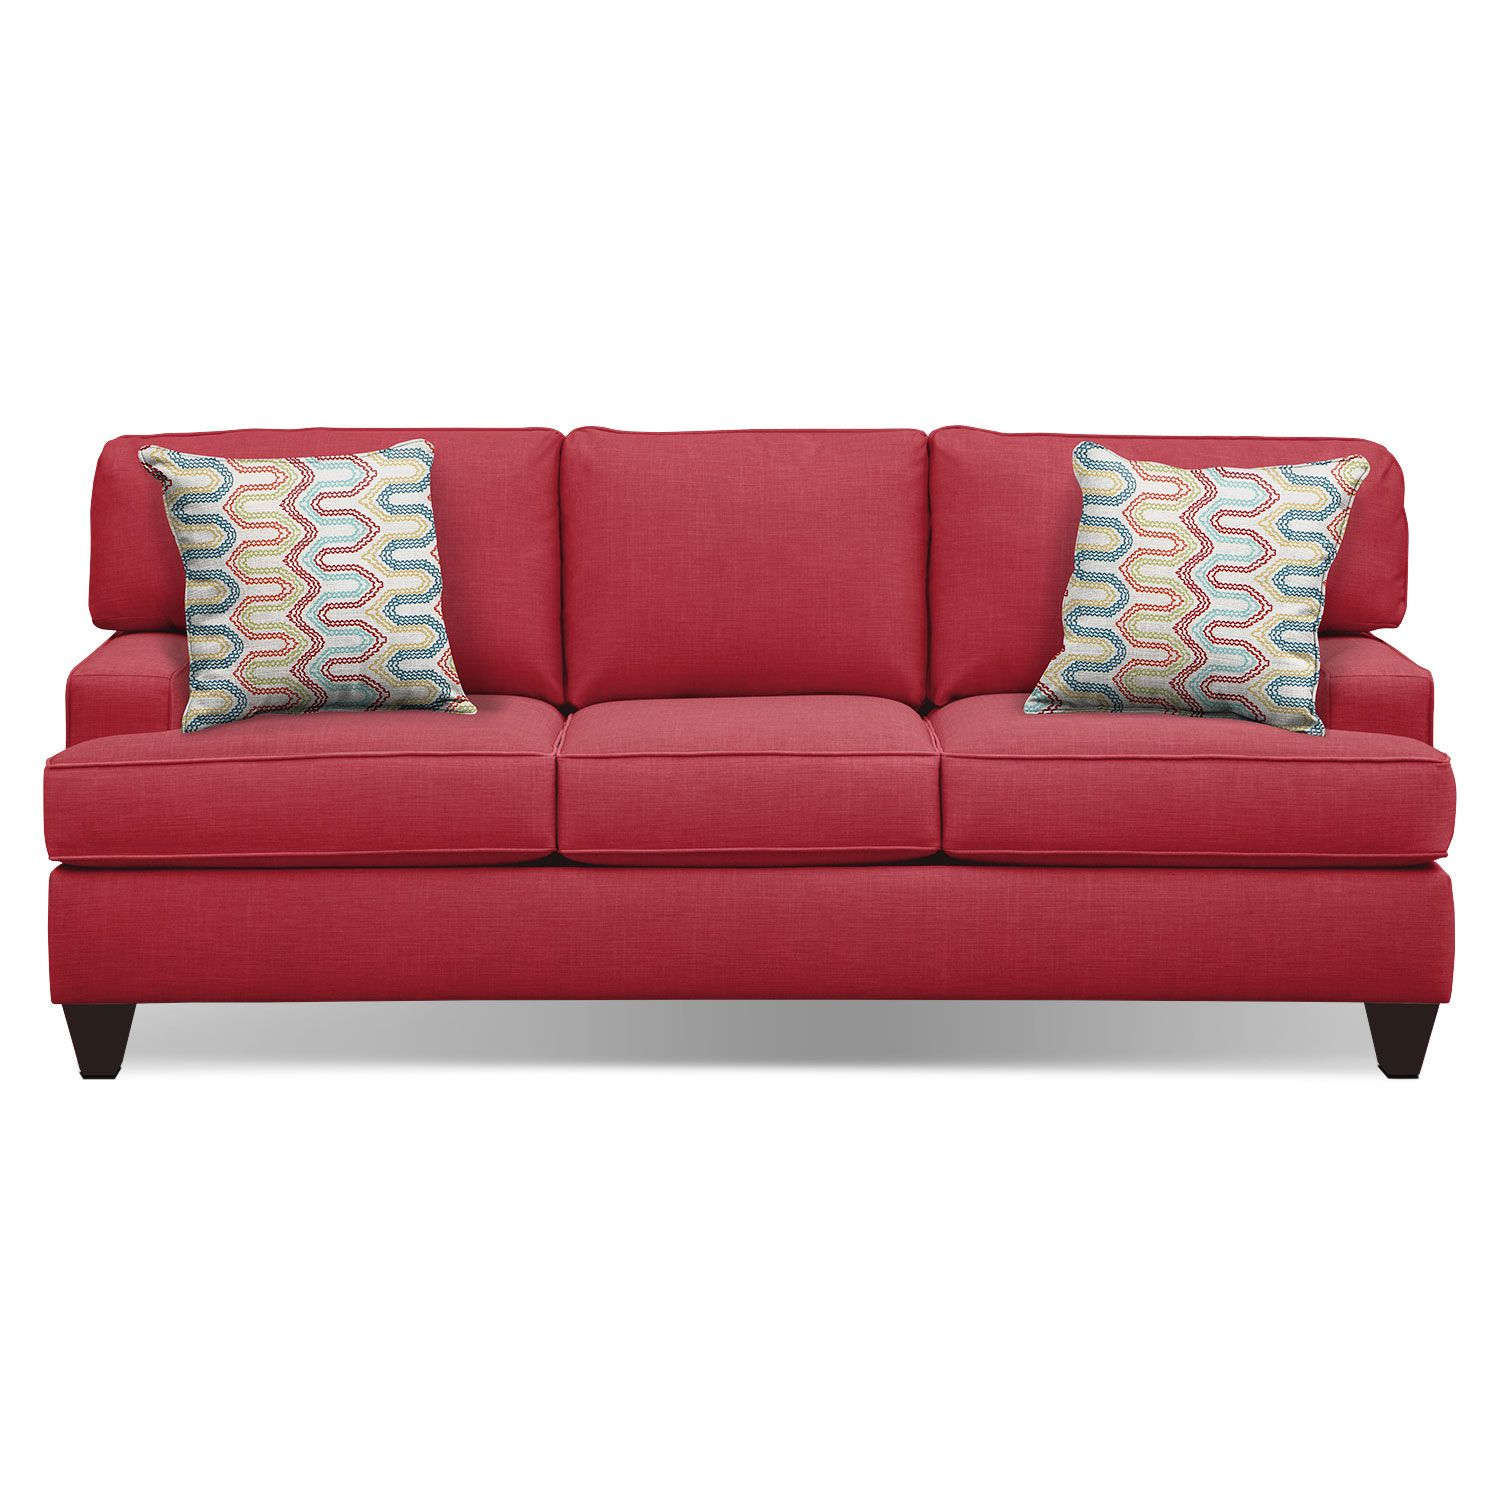 Living room furniture conner red 87 sofa